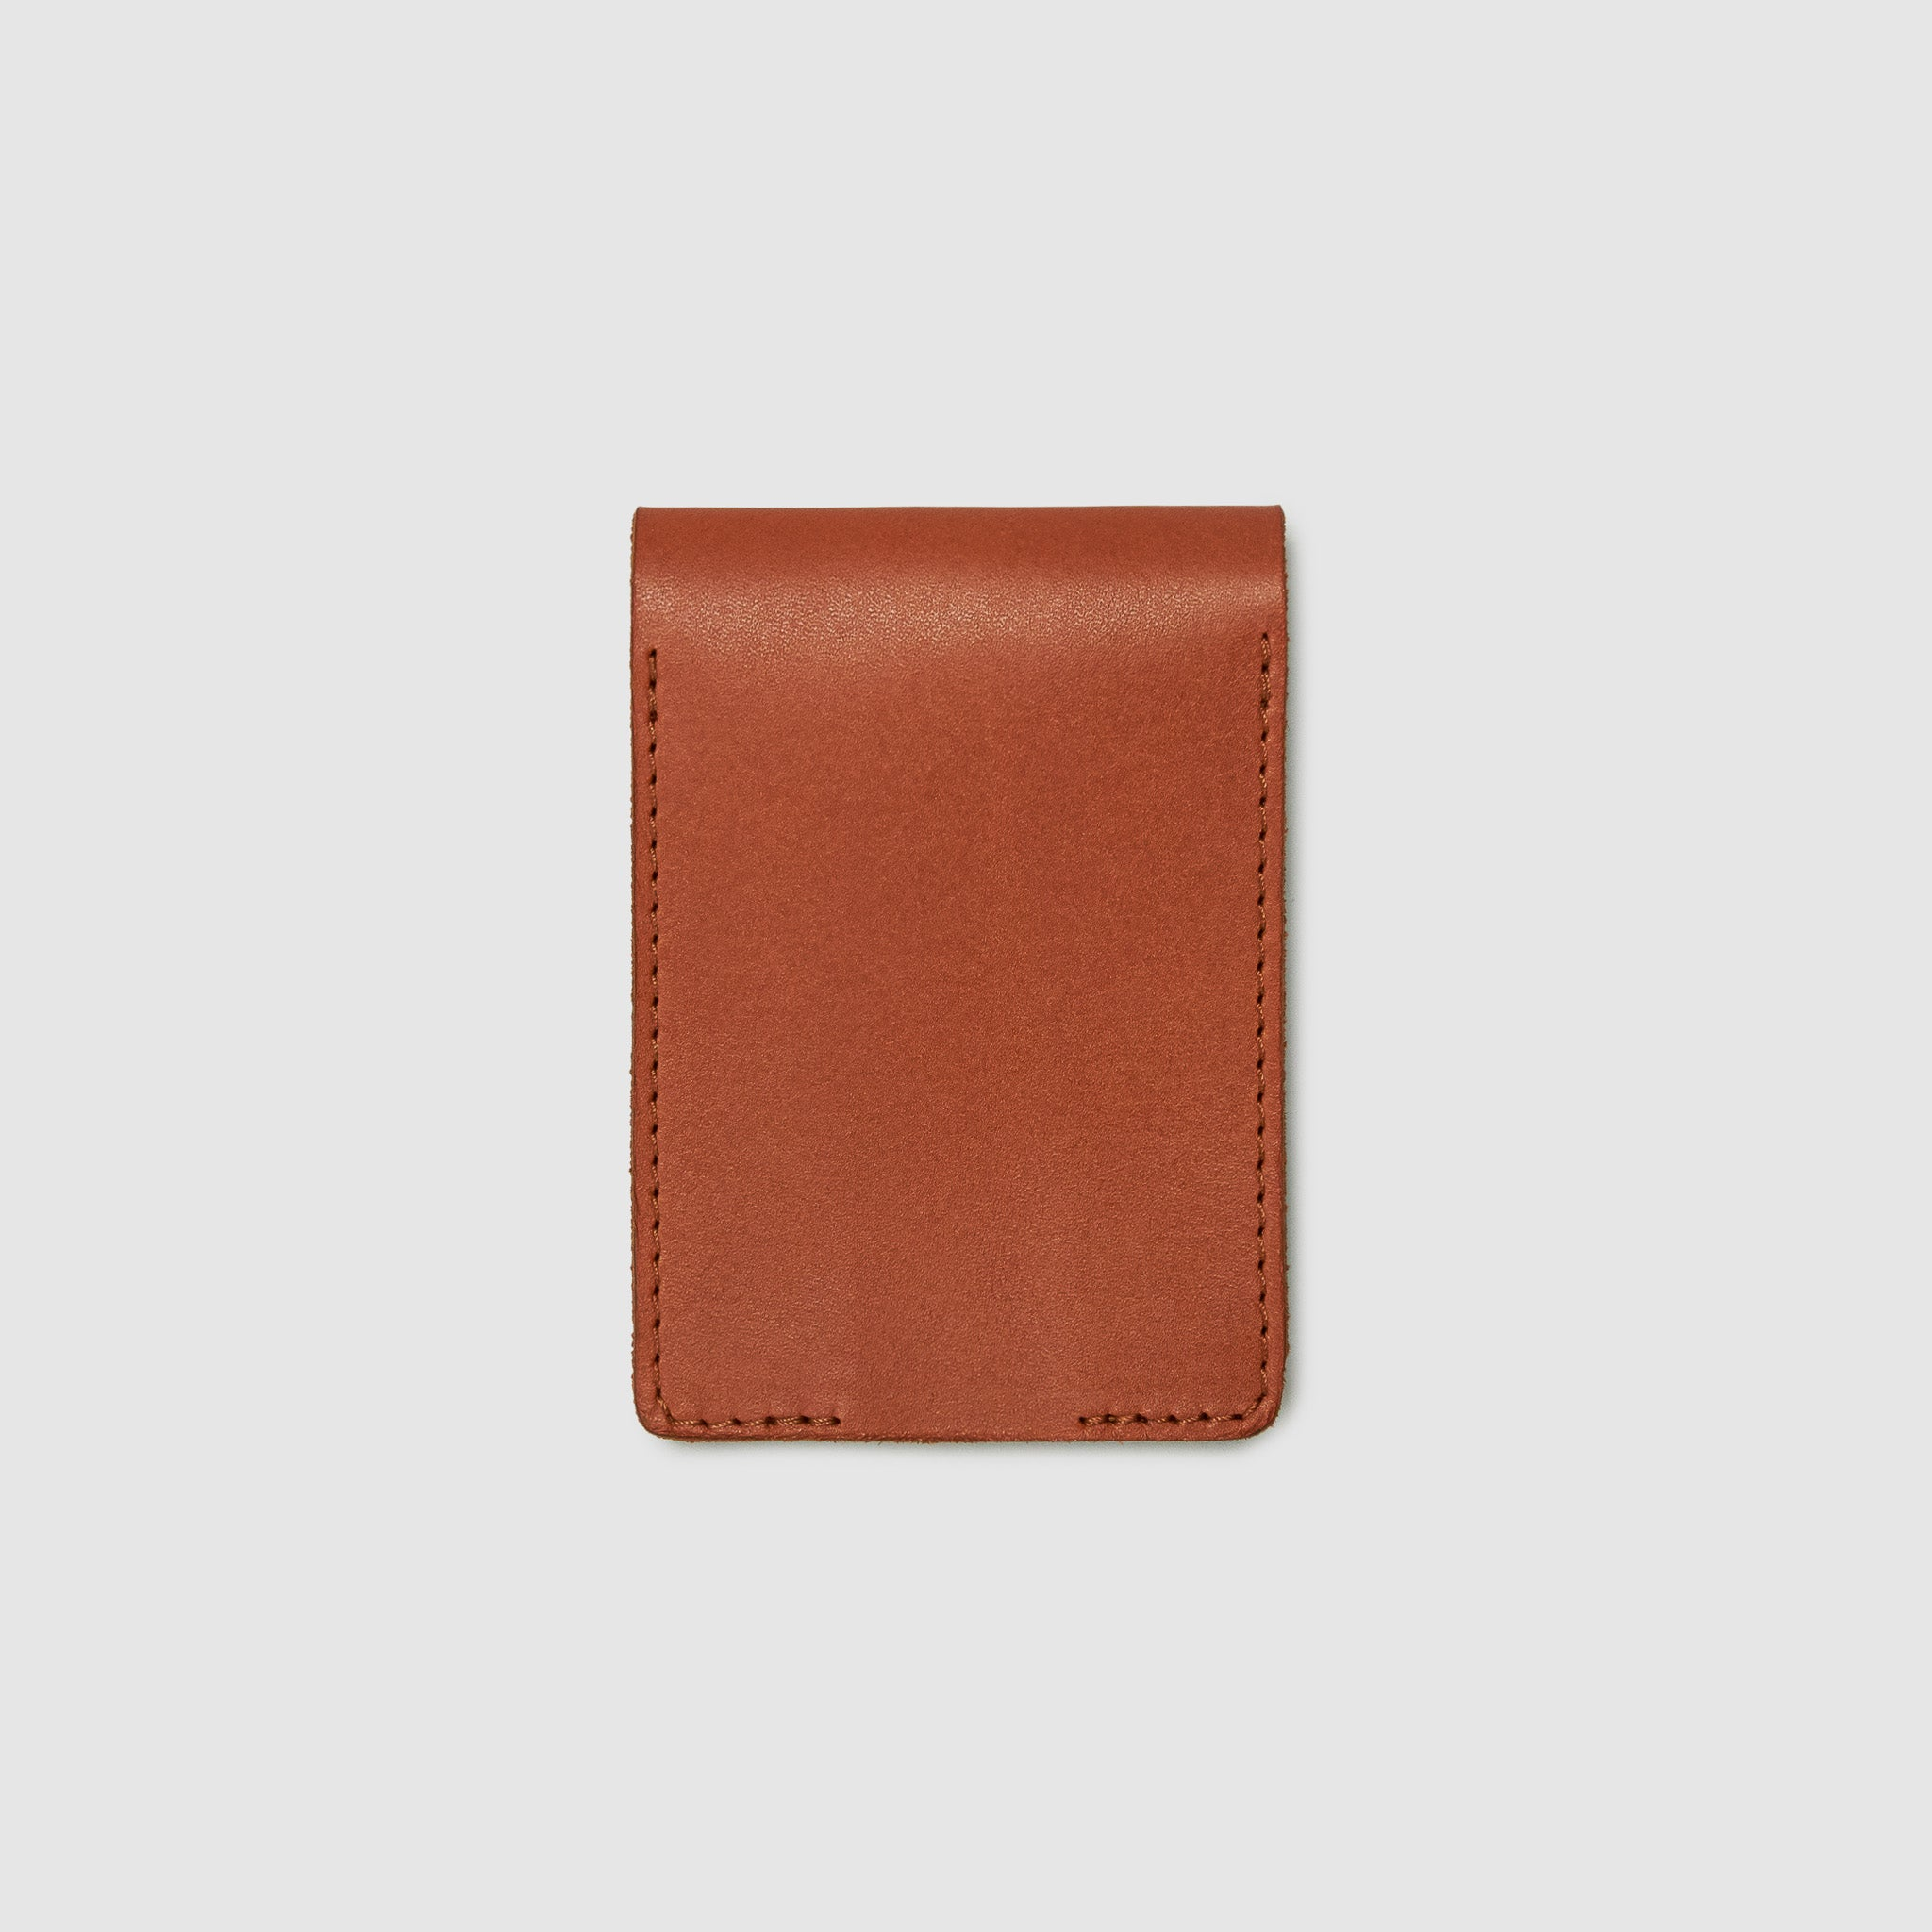 Anson Calder bifold or business card Wallet RFID french calfskin leather _cognac